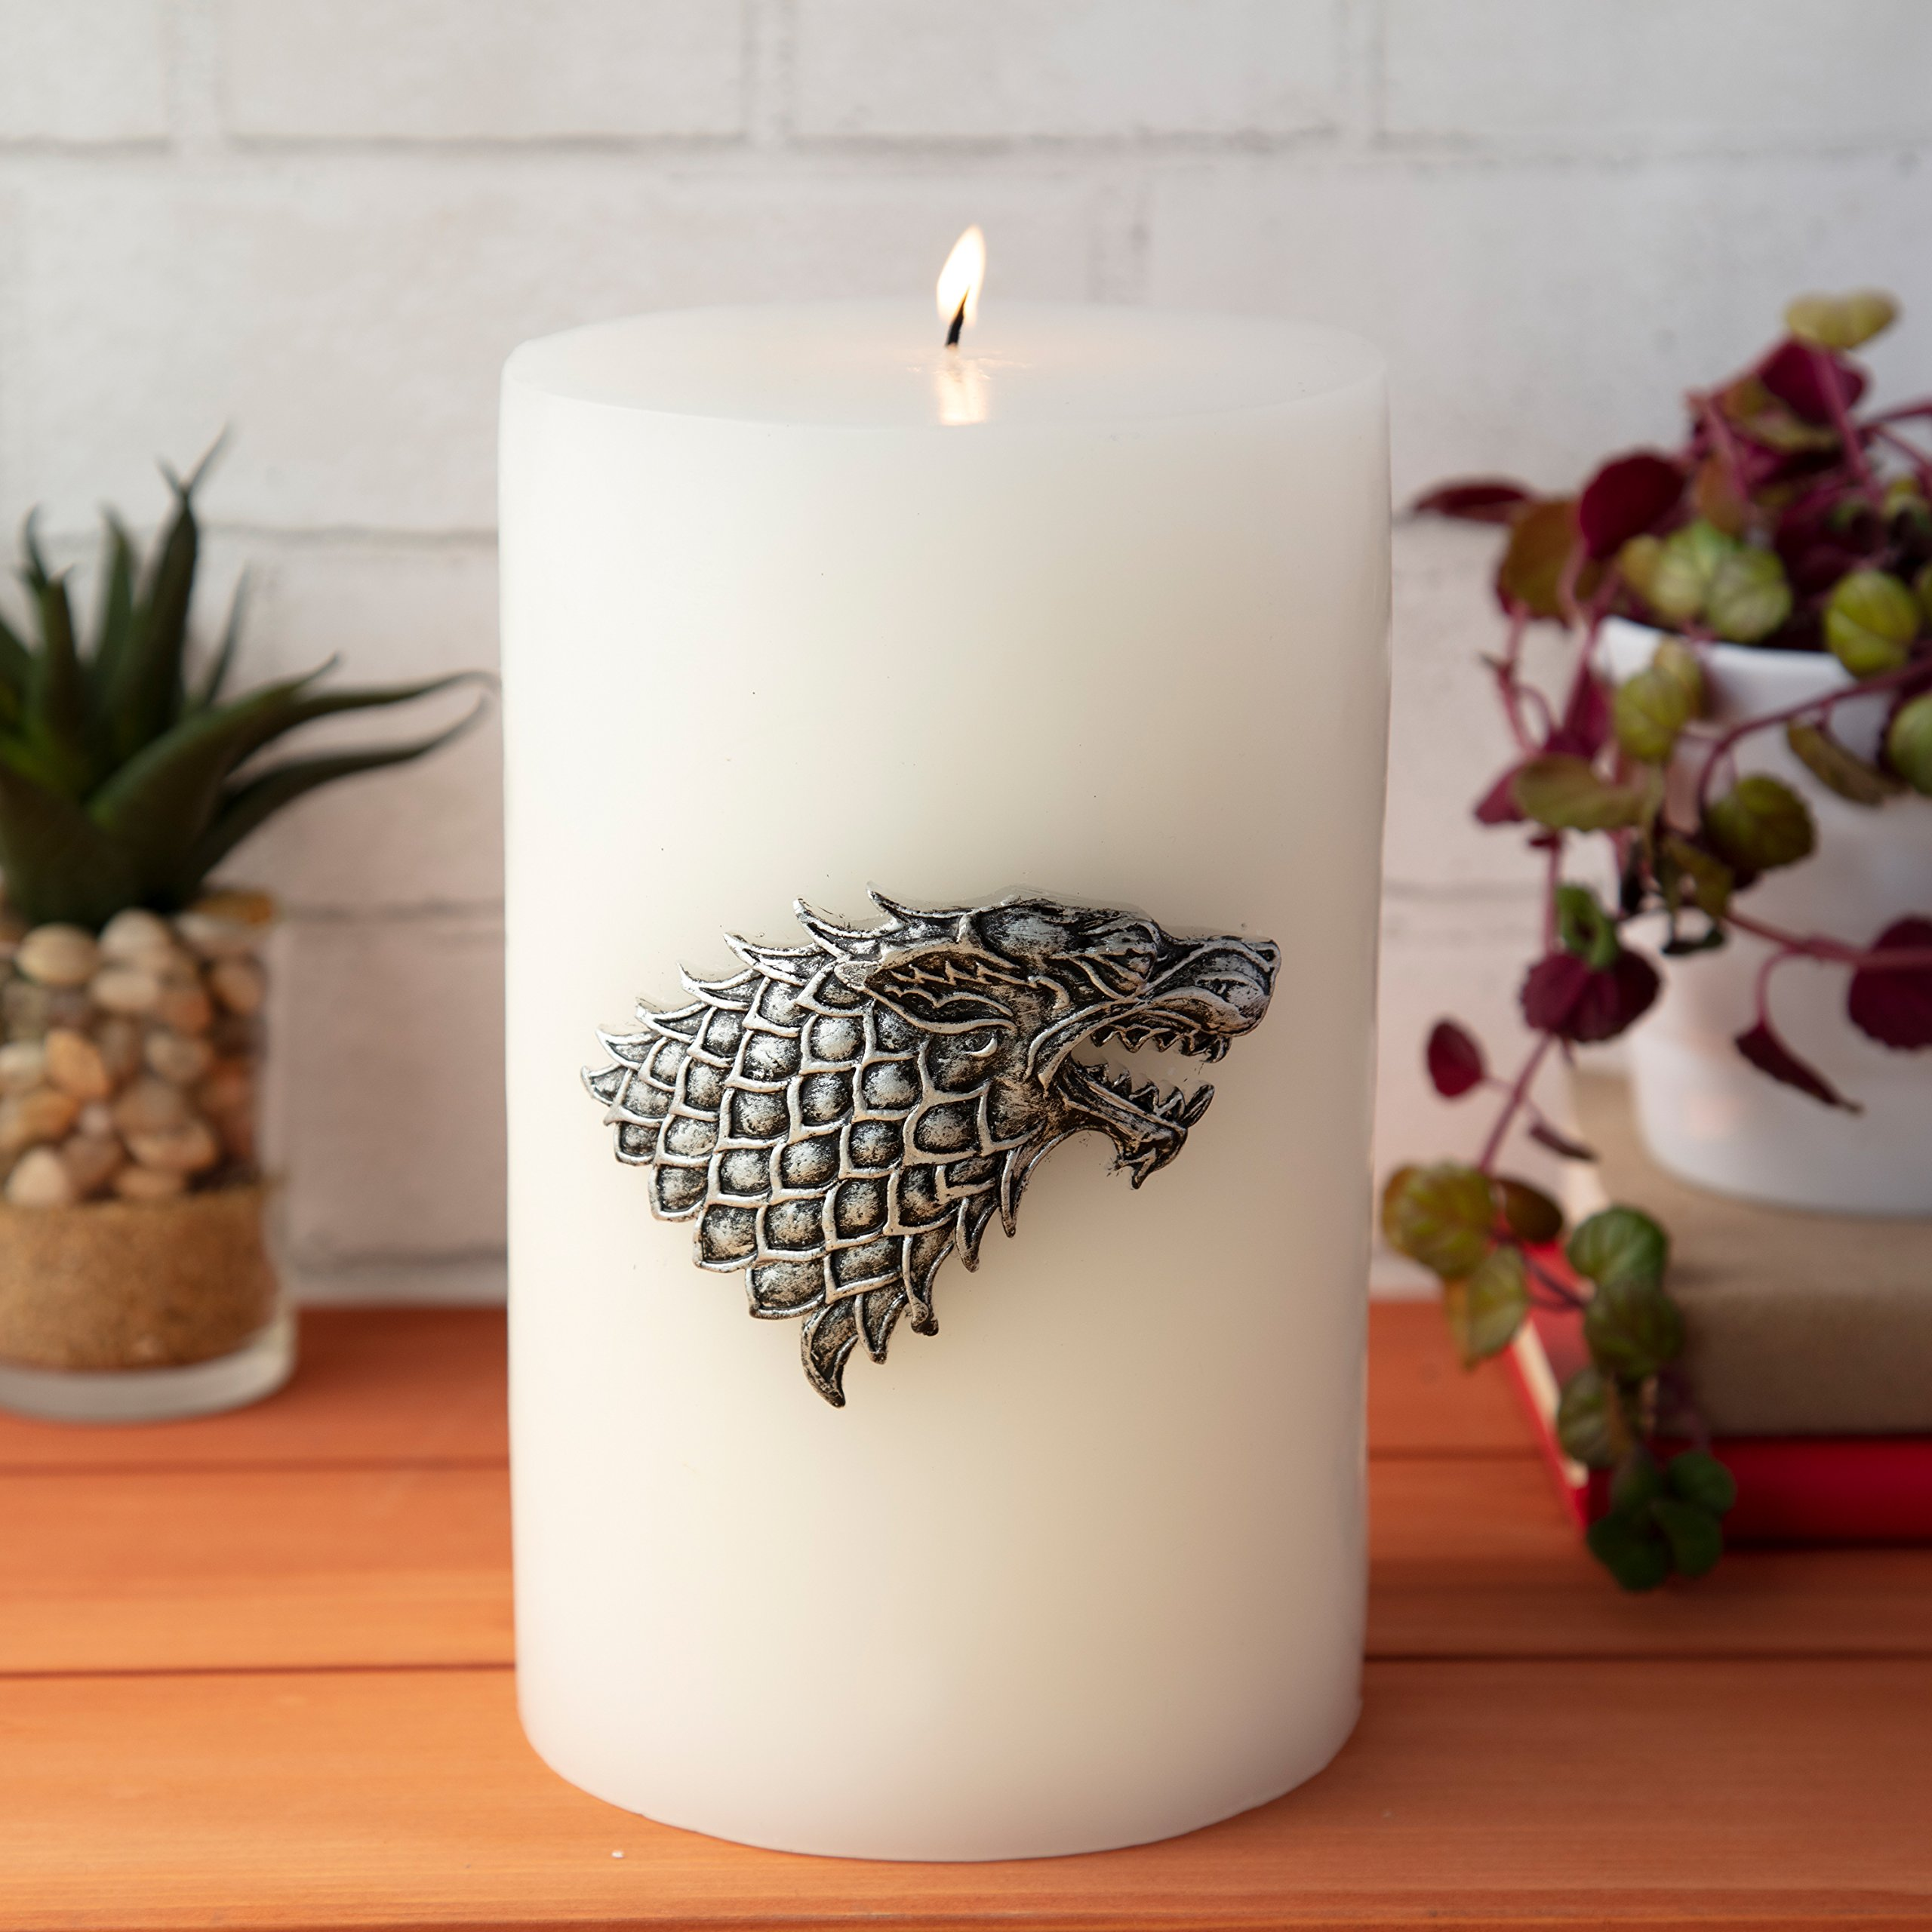 Game of Thrones Candle - Large House Stark Insignia Sculpted Pillar Candle - Perfect for GoT Fans - Unscented - 8''h by Game of Thrones (Image #7)